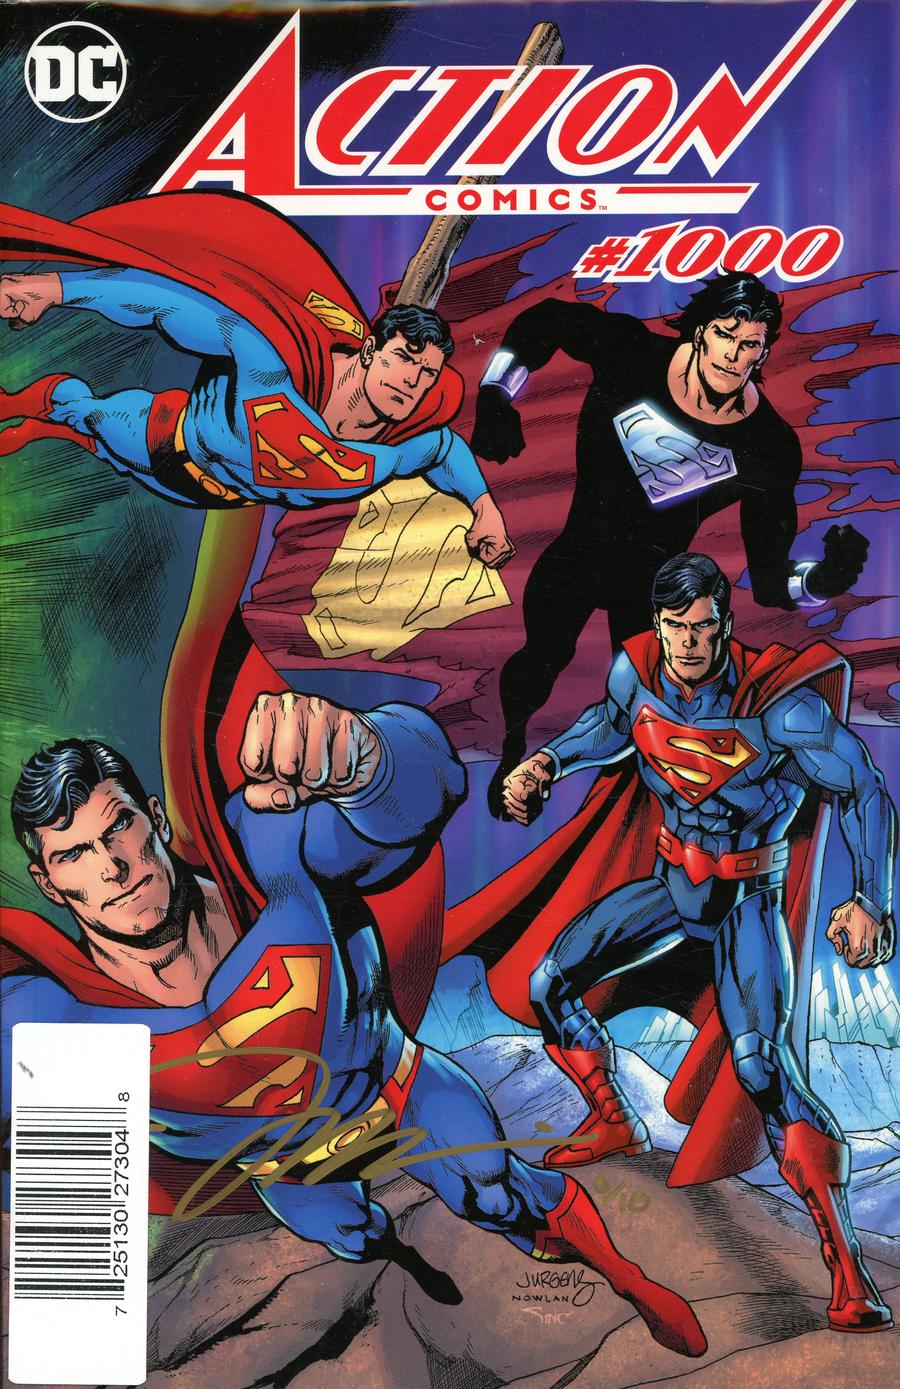 Action Comics Vol 2 #1000 Cover Z-S DF Exclusive Color Wraparound Cover Gold Signature Series Signed By Jim Lee